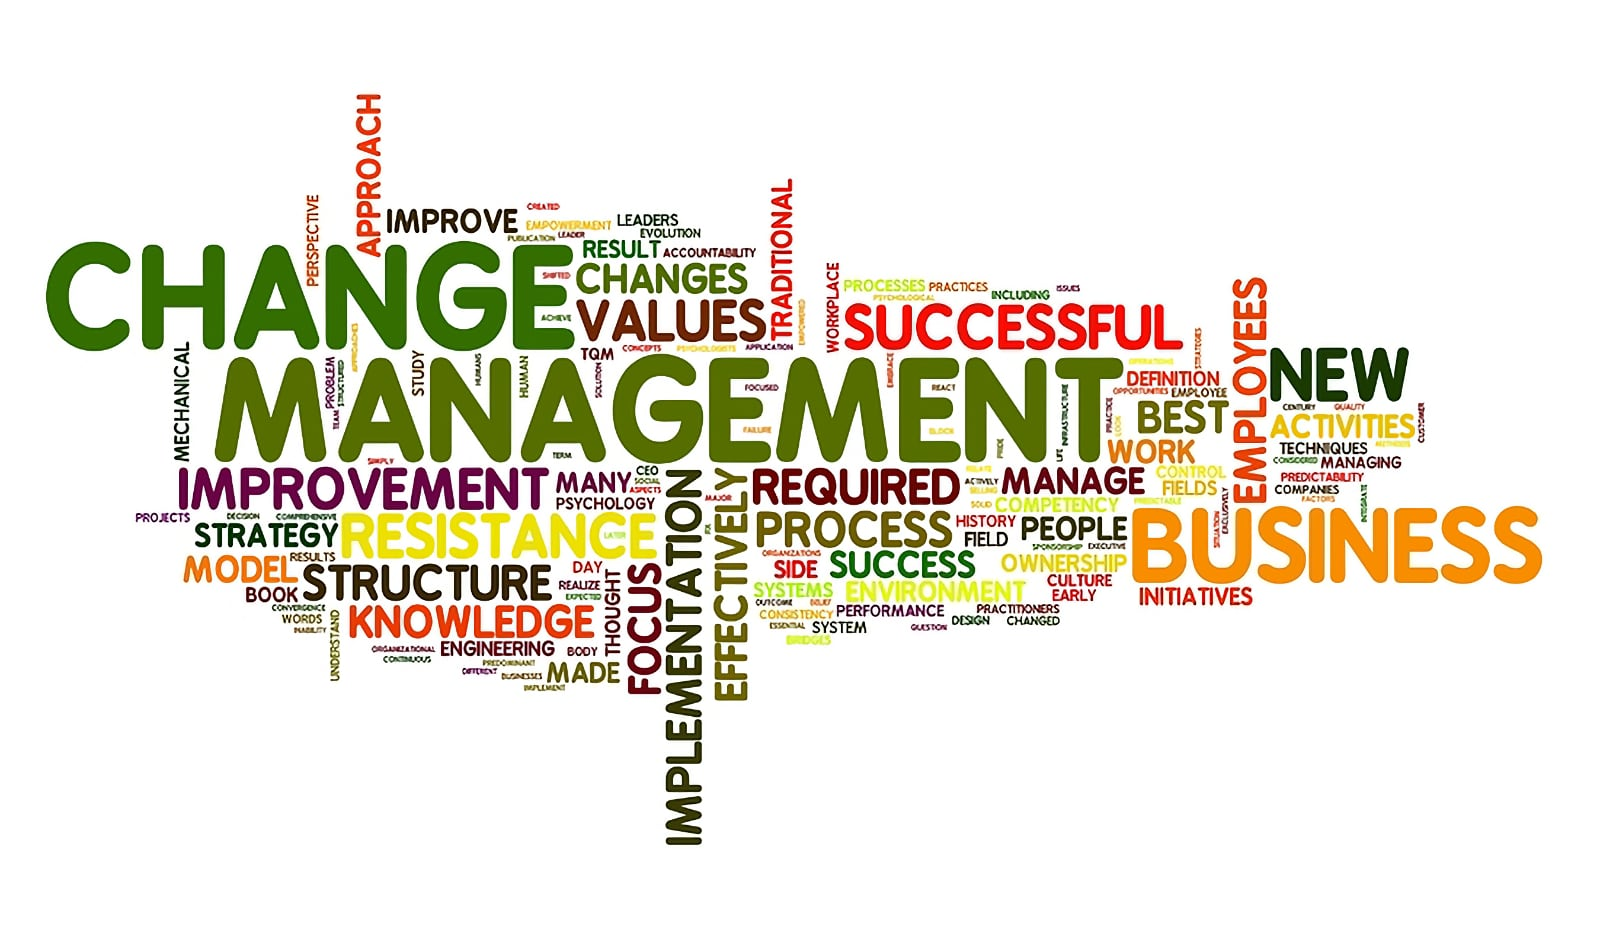 Word cloud concept image centred on the phrase Change Management, with additional relevant words included